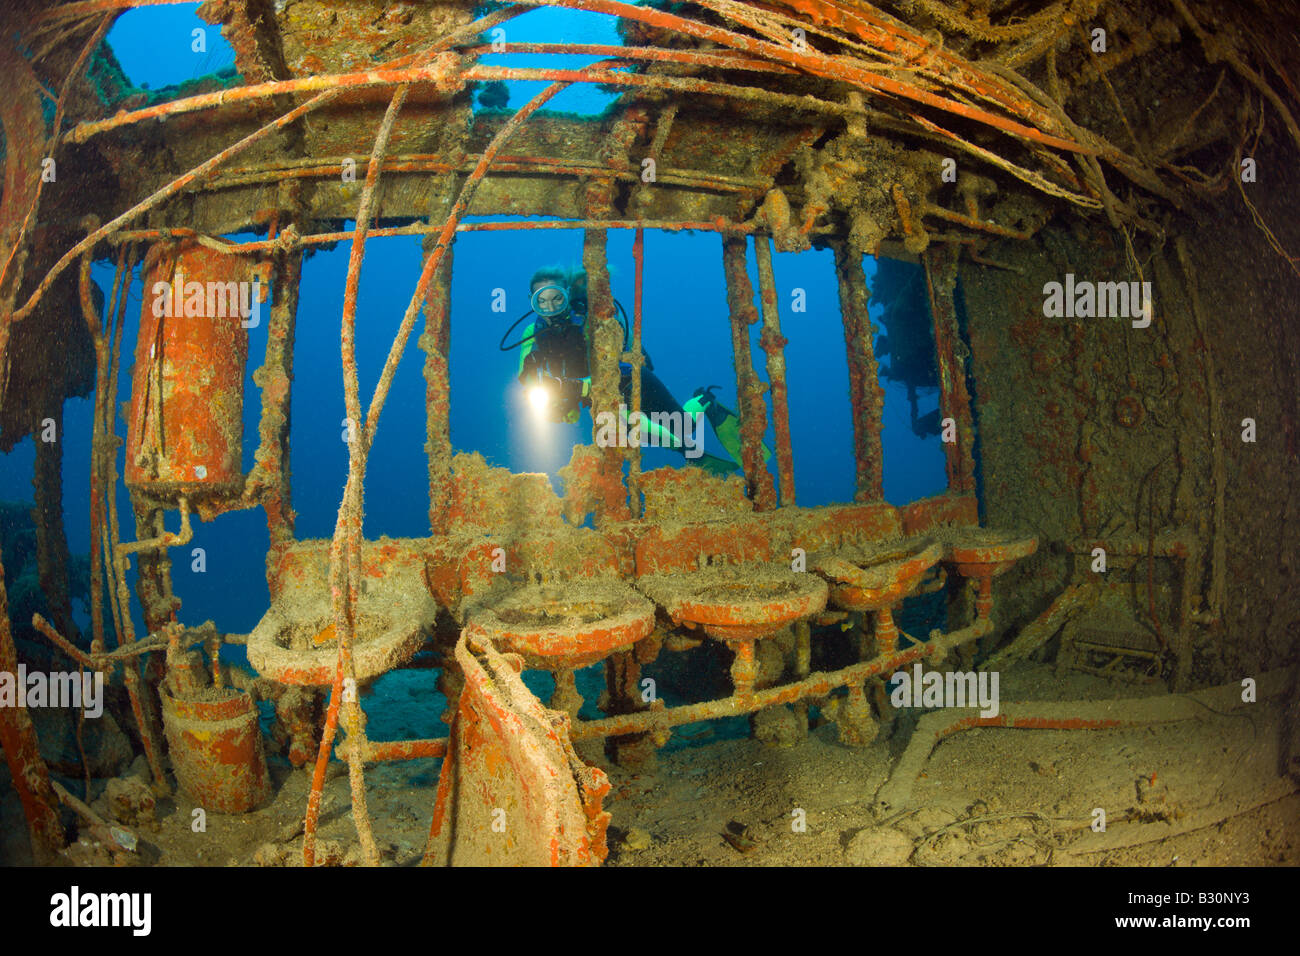 Diver near Lavatory with Sinks at Destroyer USS Lamson Marshall Islands Bikini Atoll Micronesia Pacific Ocean - Stock Image